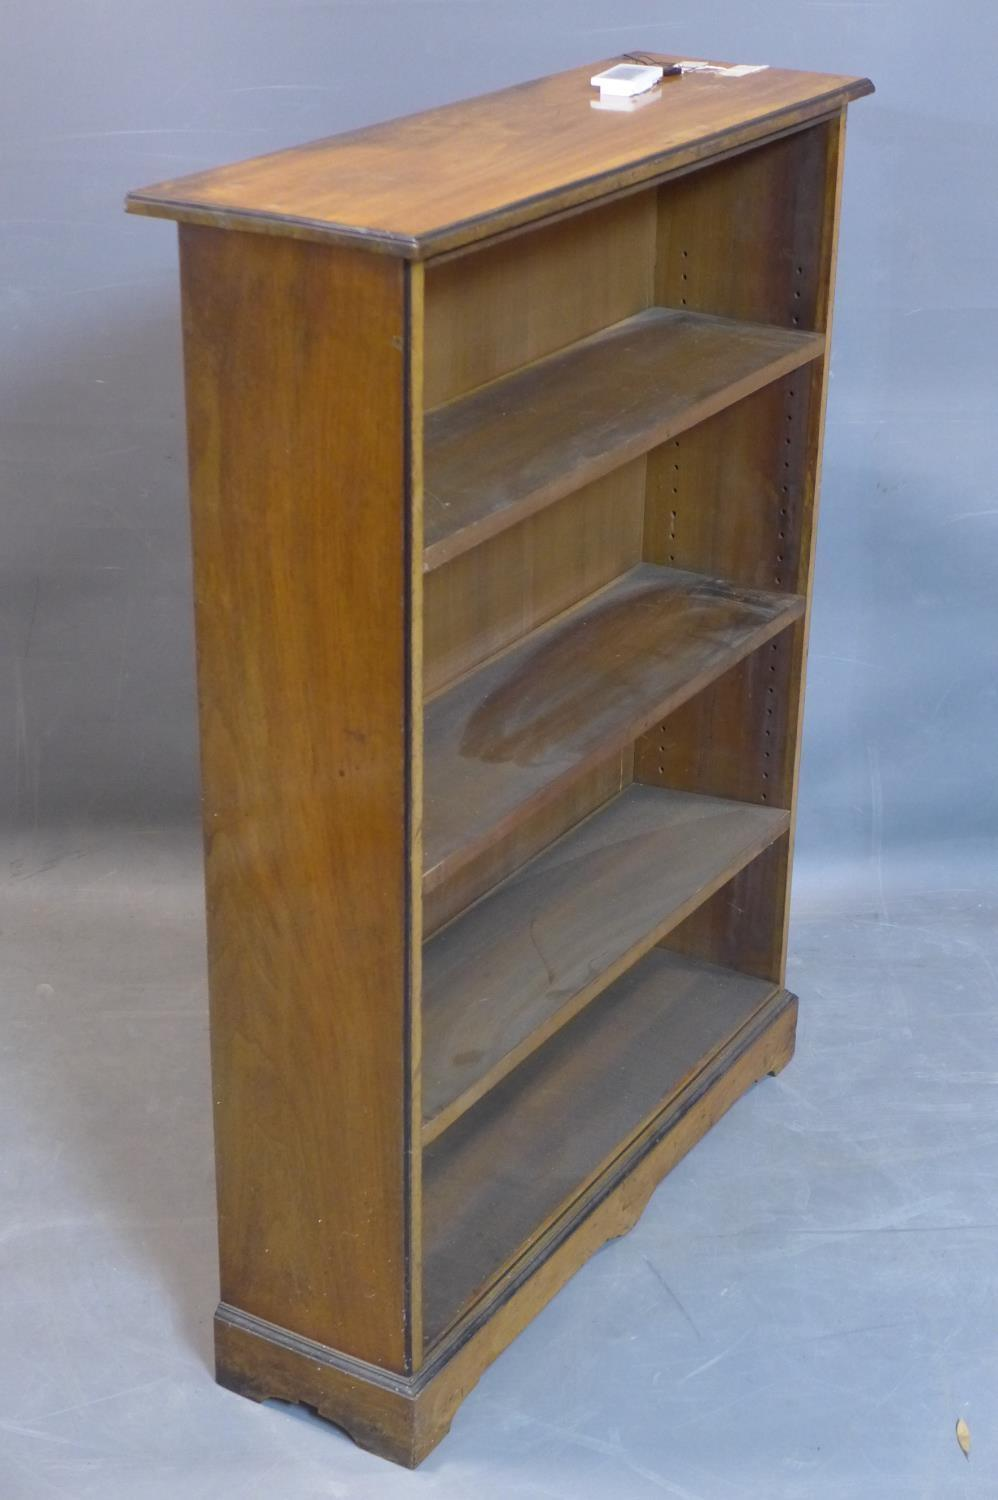 Lot 248 - An Edwardian mahogany open bookcase, with ebonised edges, raised on pedestal base and bracket feet